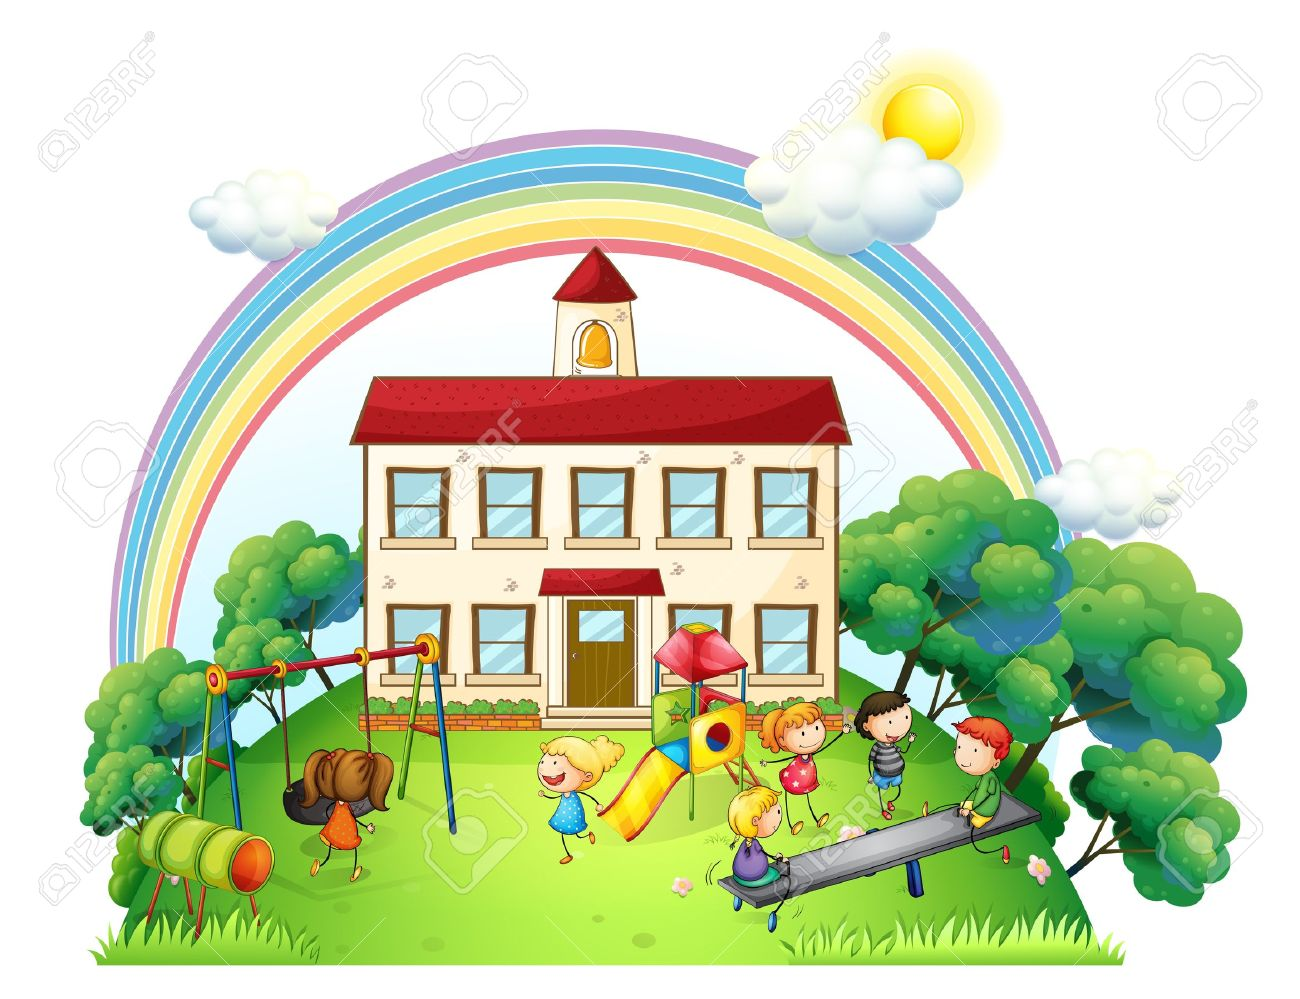 Illustration of the kids playing at the playground on a white background - 20729646